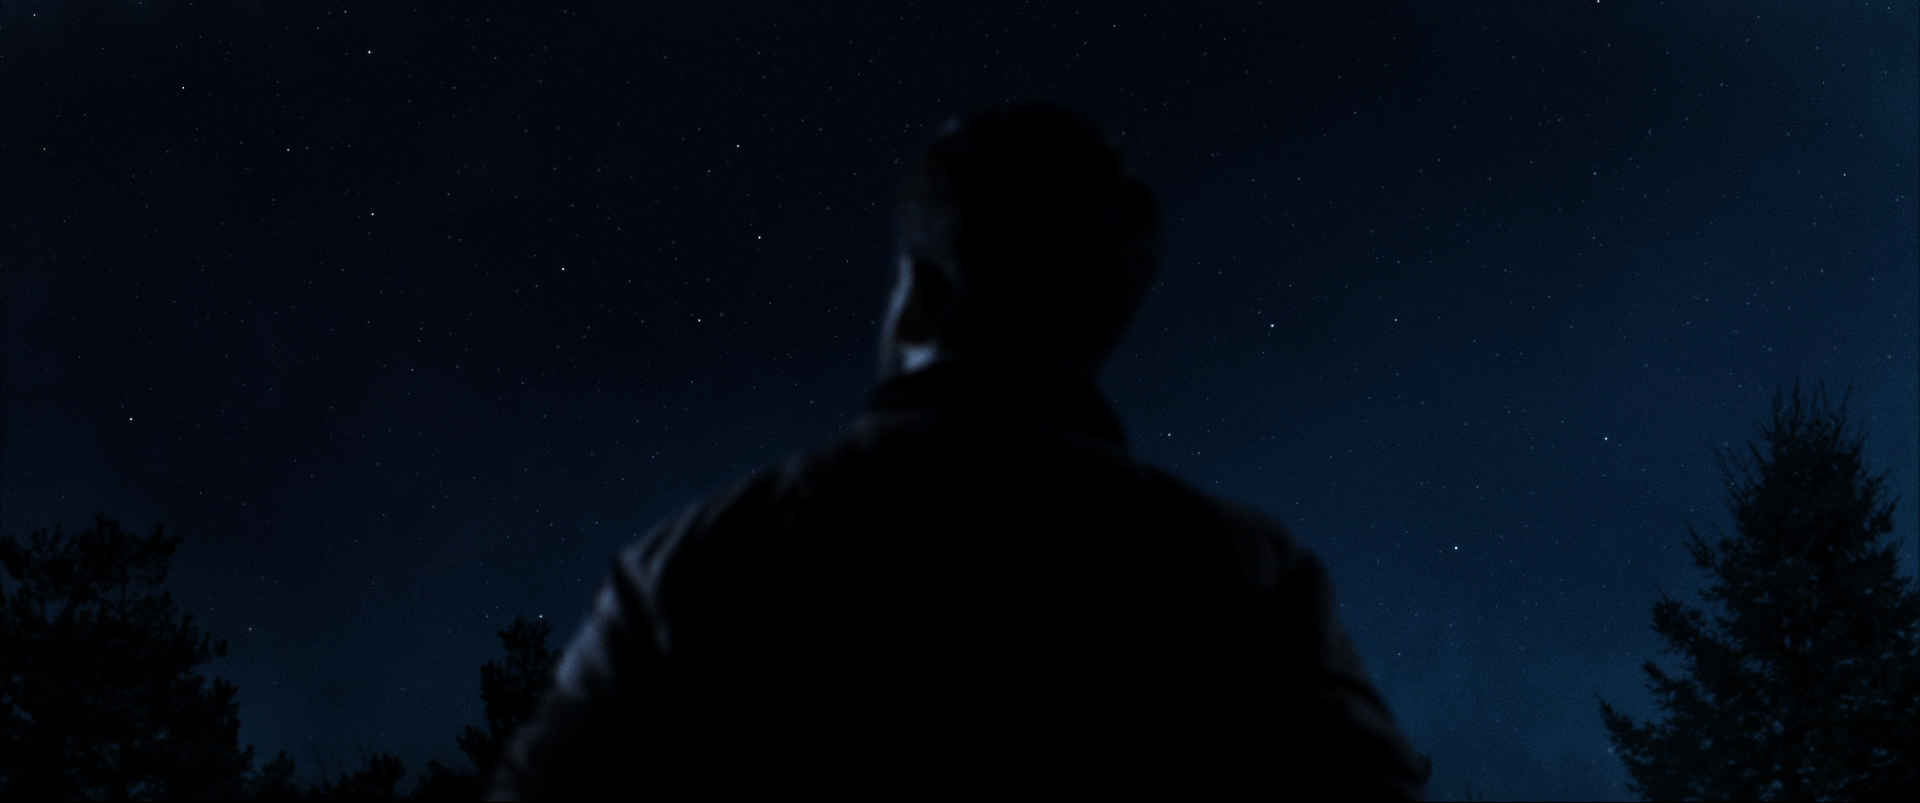 COSMOS_FEATURE STILL_2.png